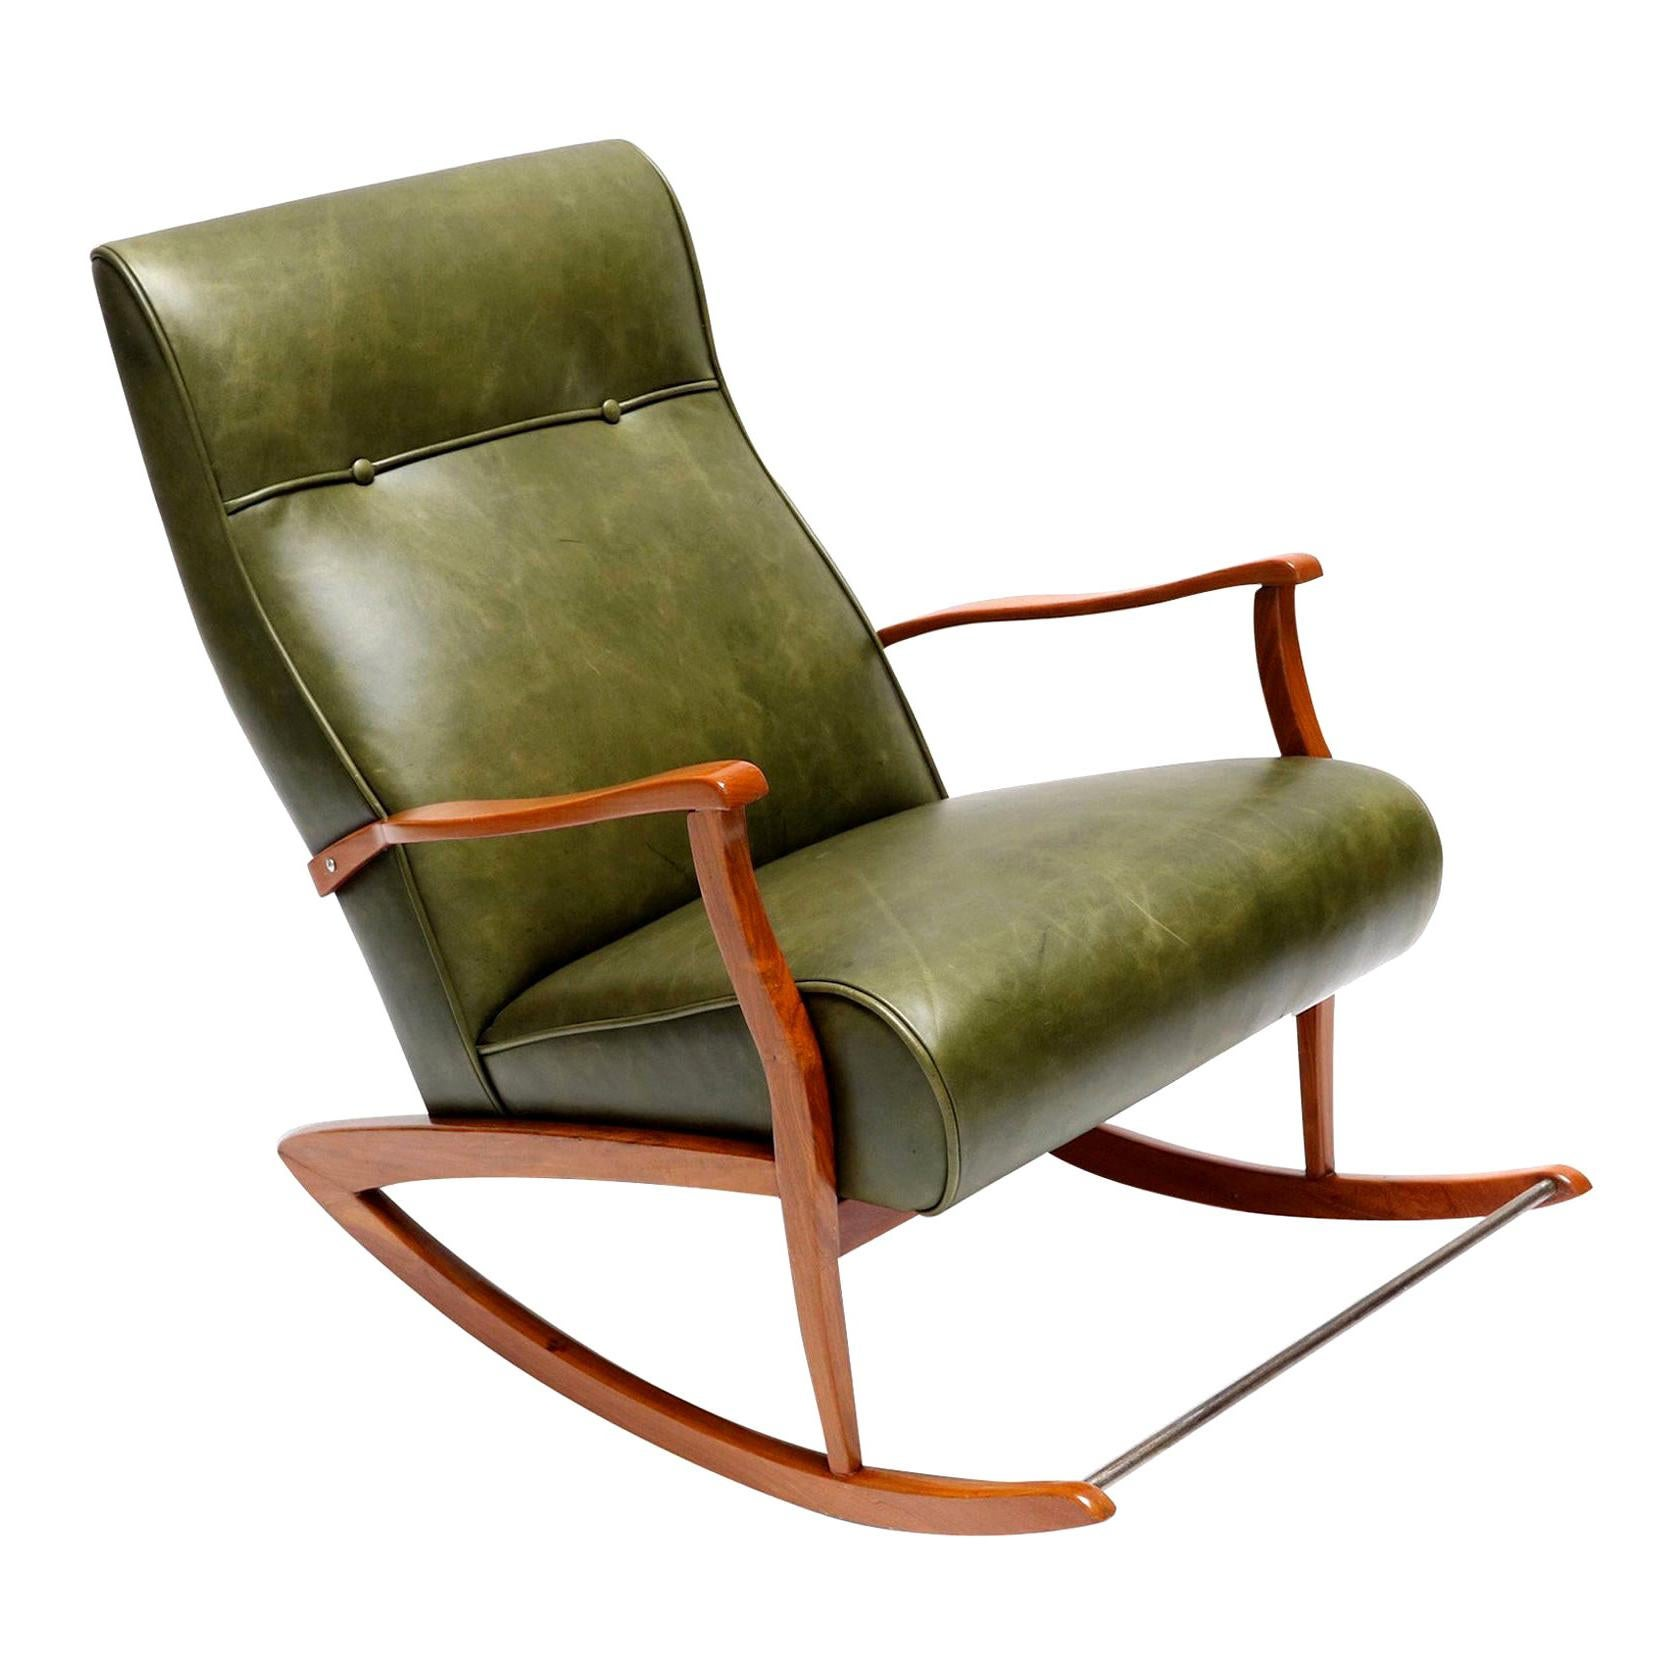 Brazilian Wooden Rocking Chair in Green Leather, 1960s